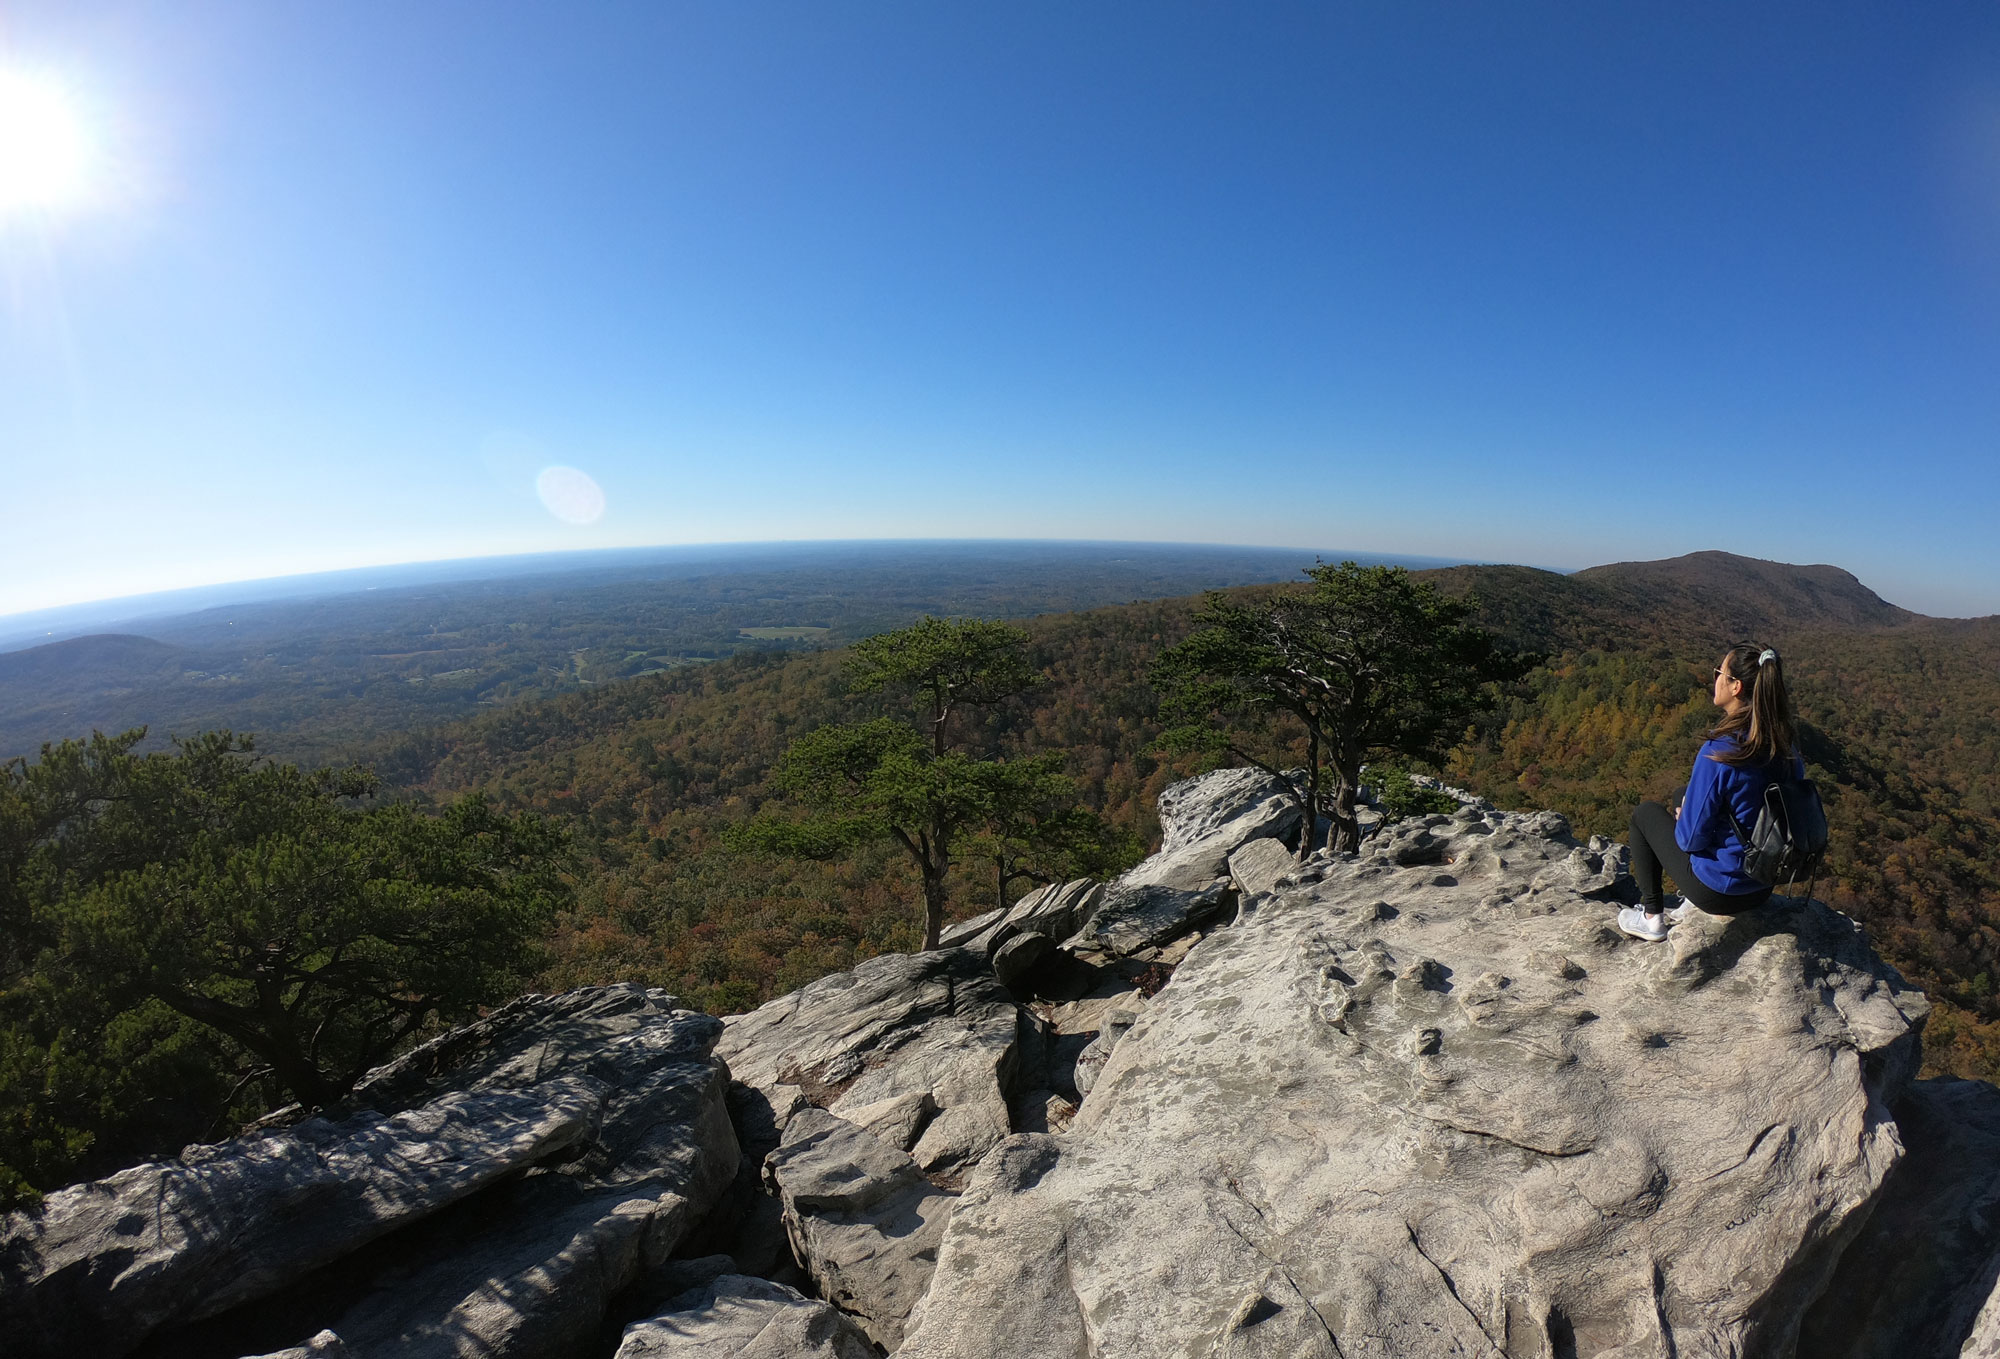 The view hiking from atop Hanging Rock in North Carolina